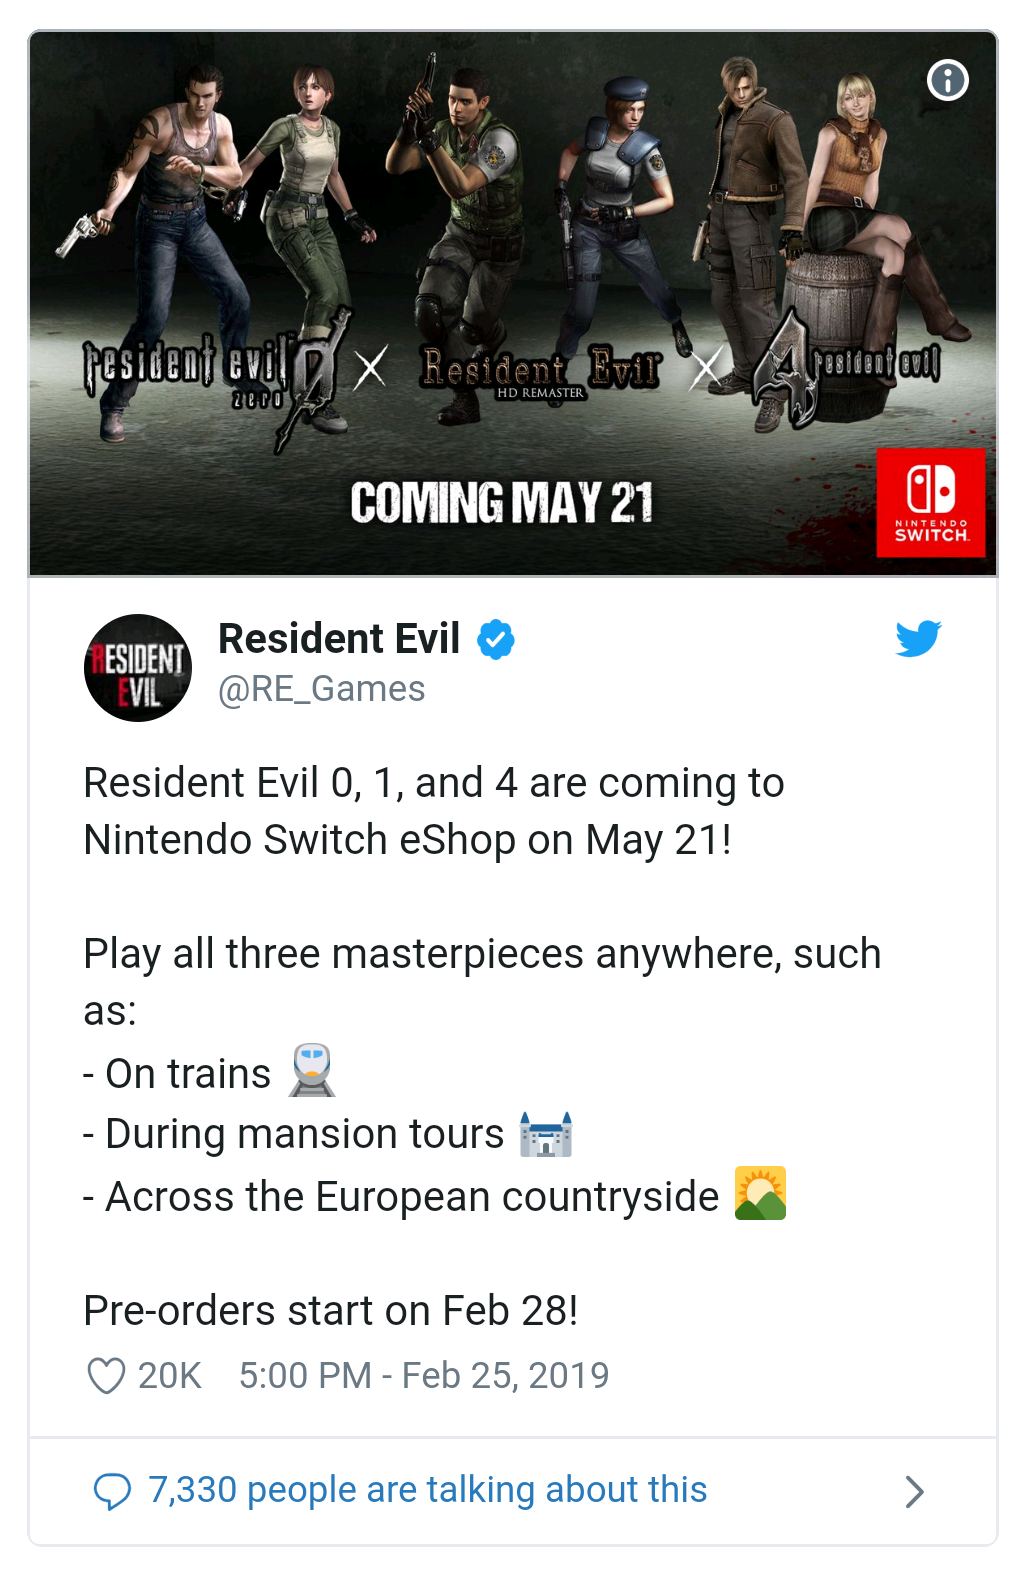 Erudipedia: Resident Evil 0, 1 and 4 Official Release Date Confirmed